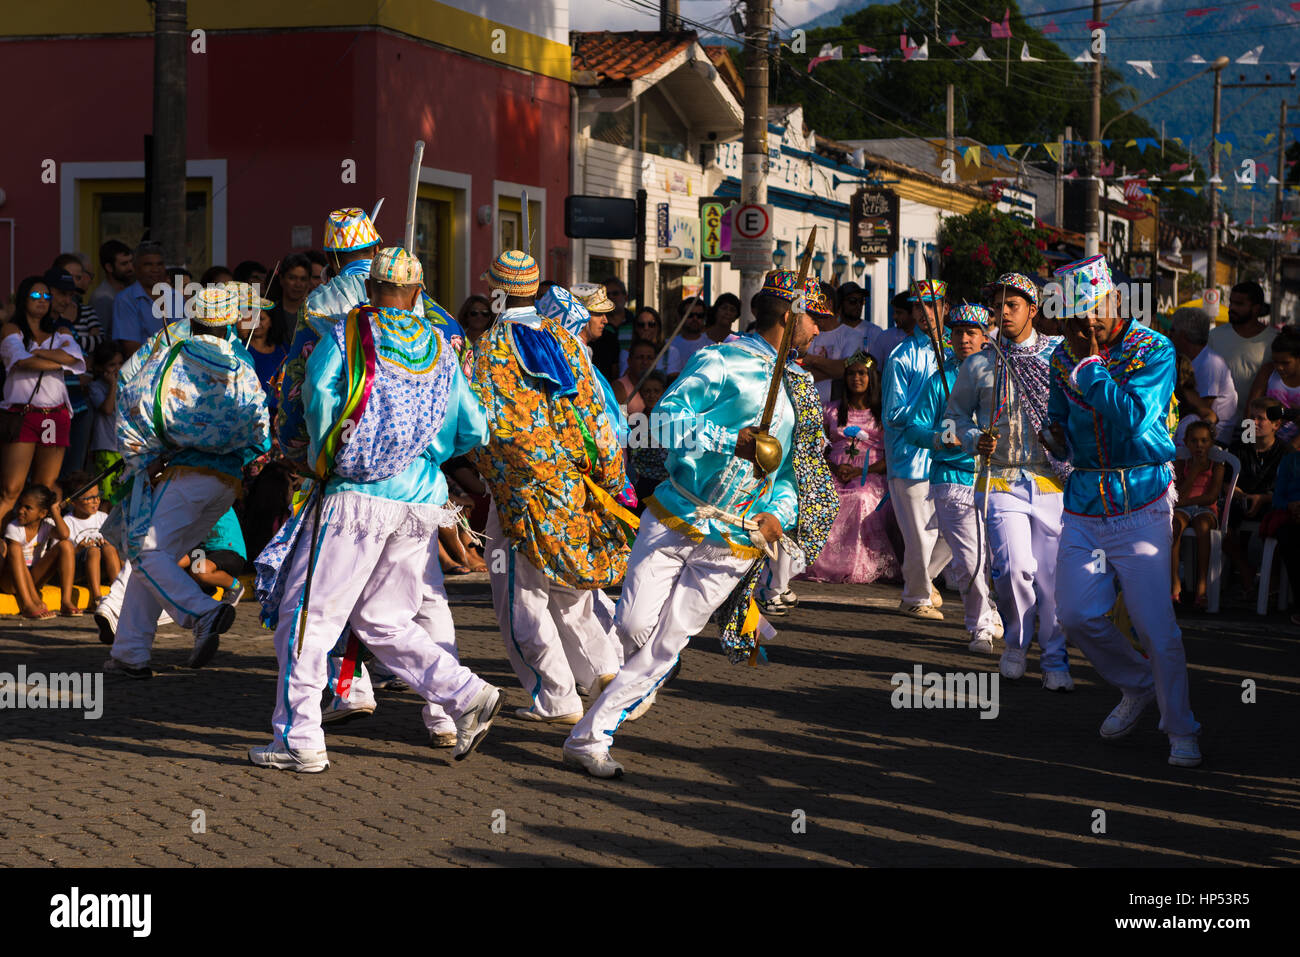 Performers at the Congada festivity in Ilhabela, SE Brazil Stock Photo